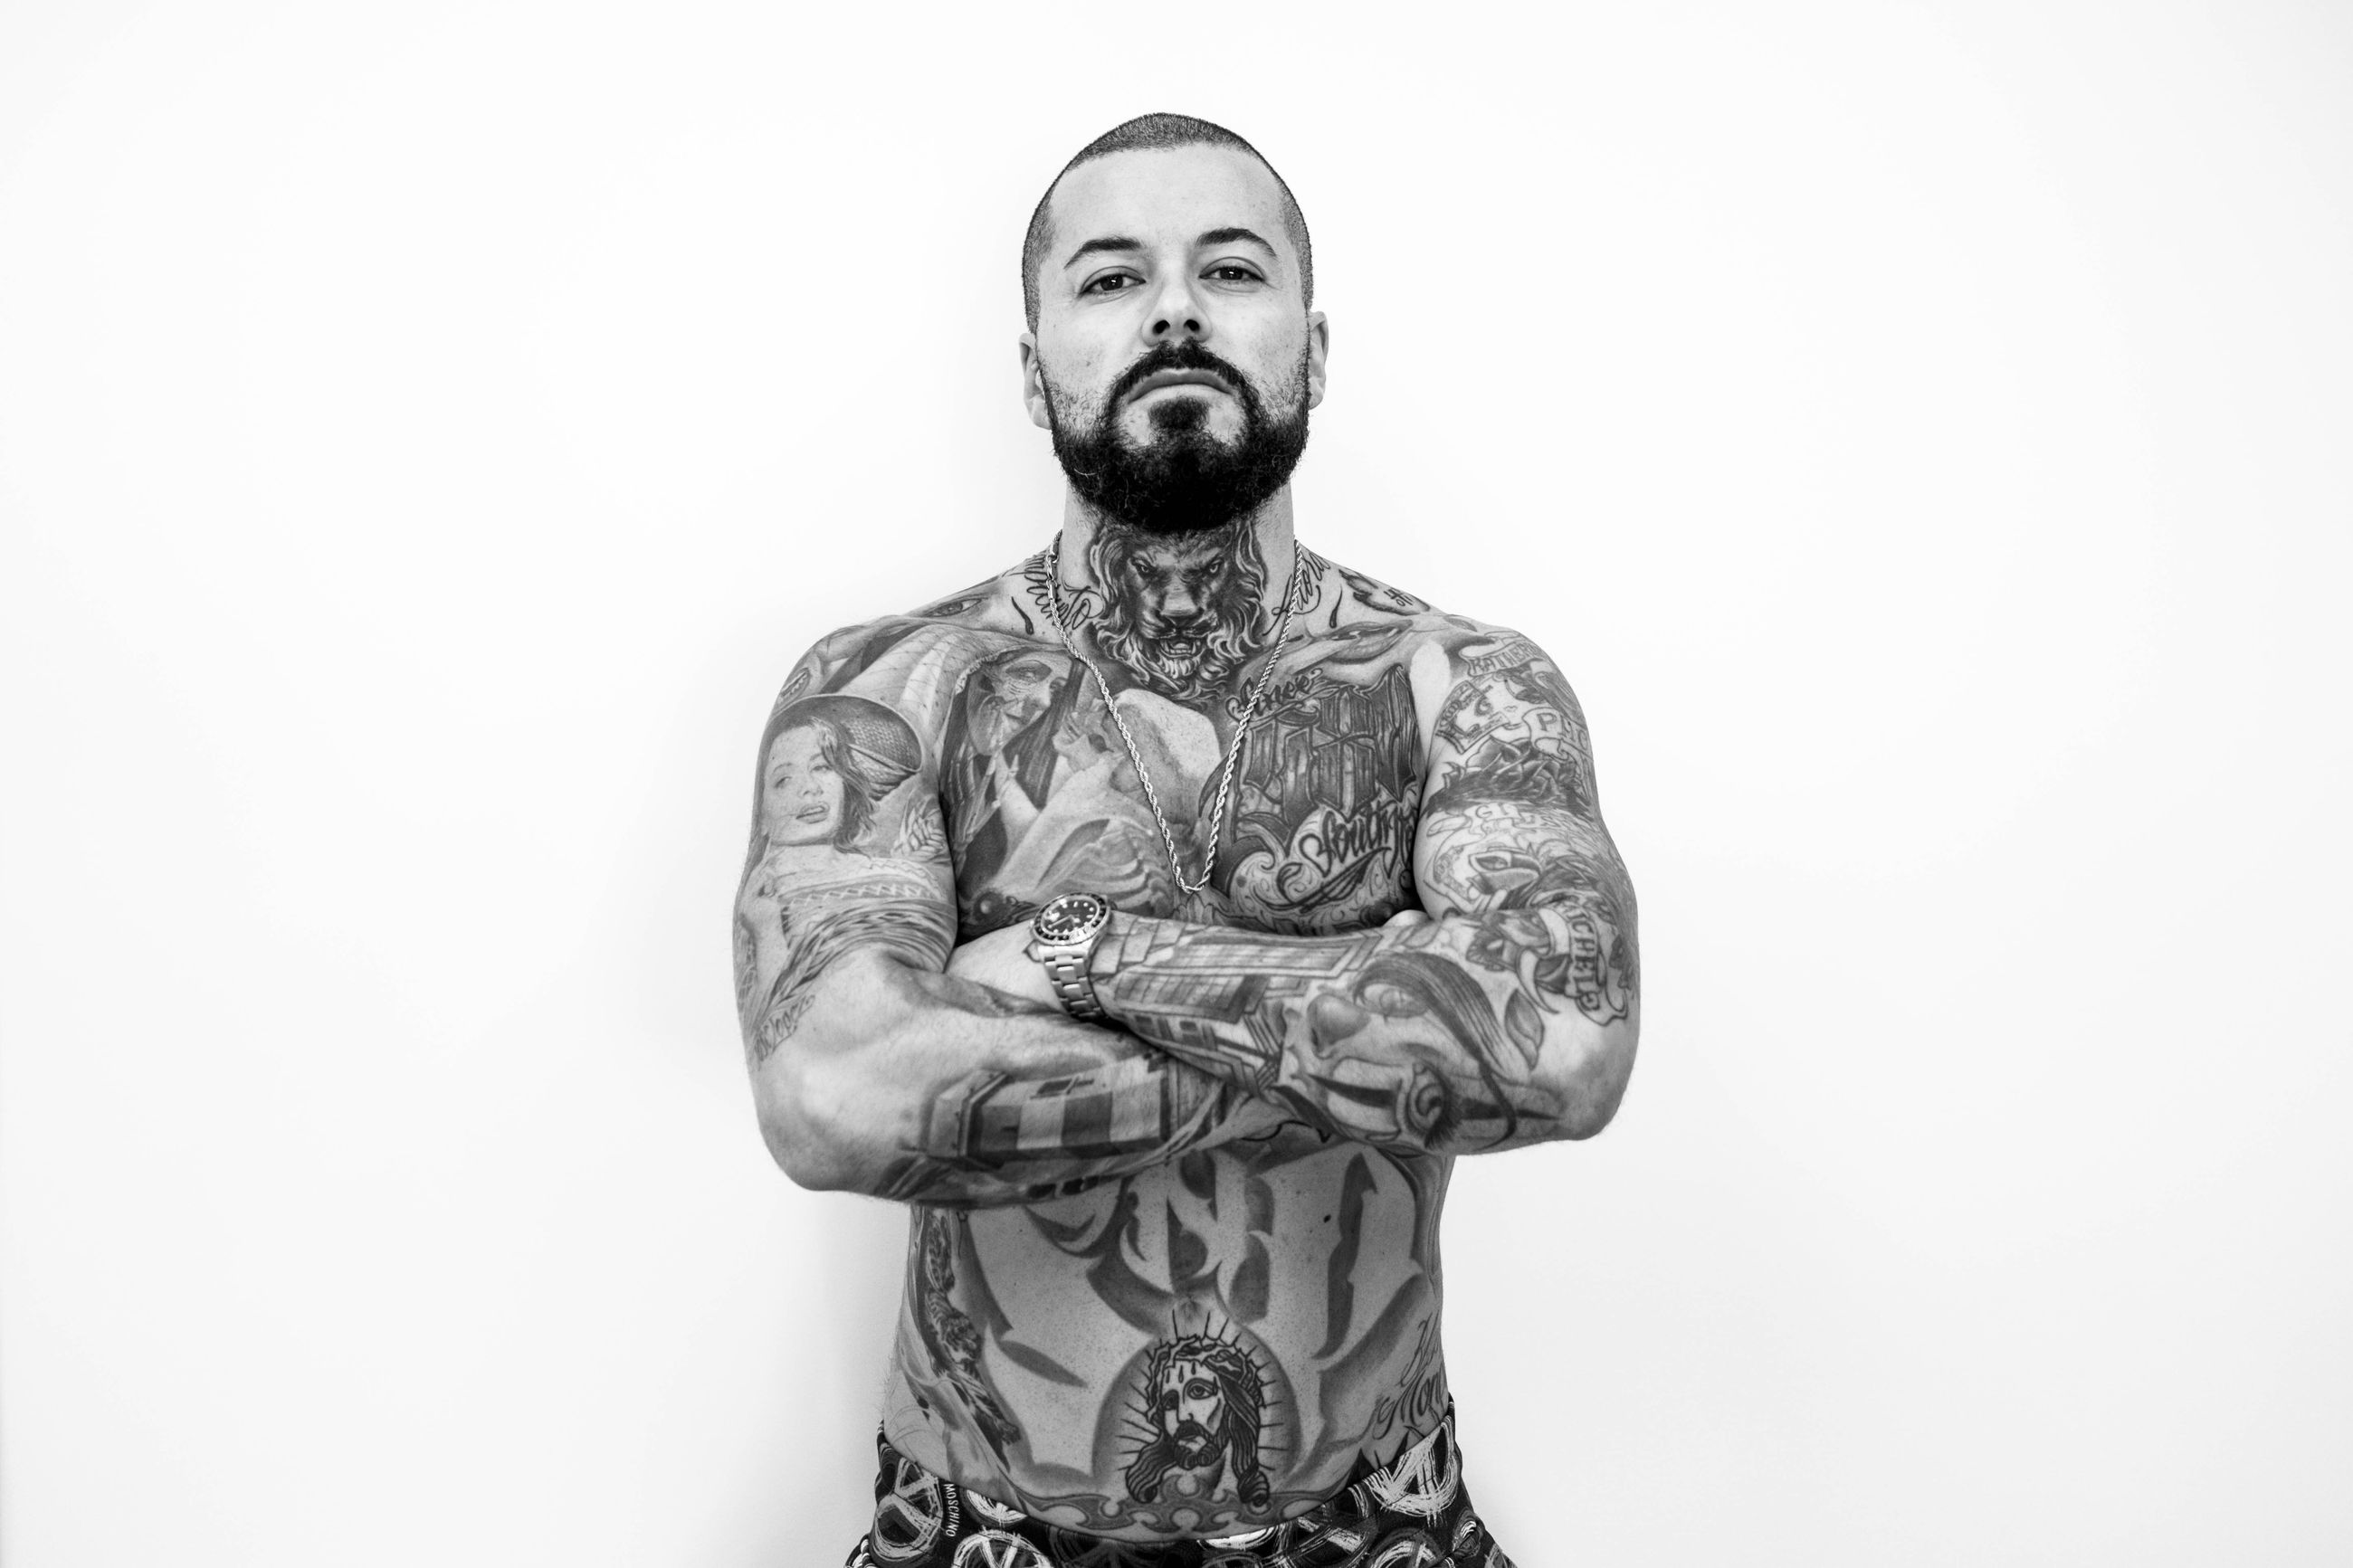 studio shot, front view, one person, white background, looking at camera, indoors, tattoo, mid adult, mid adult men, portrait, cut out, copy space, males, facial hair, adult, standing, beard, young adult, men, isolated